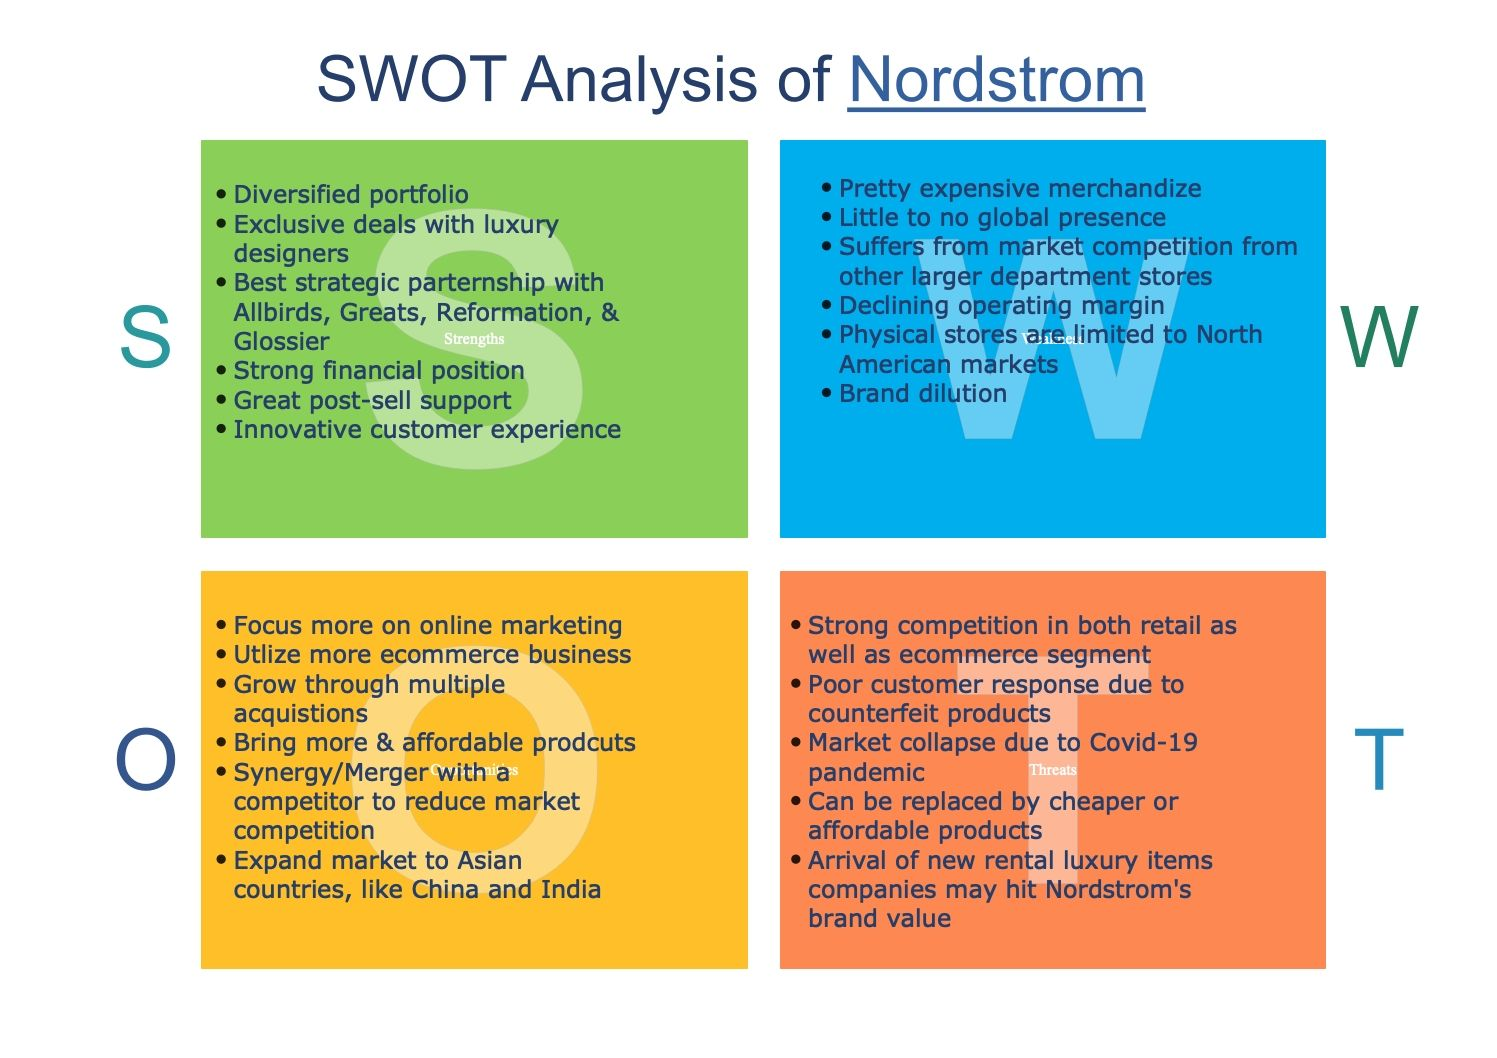 nordstrom-swot-analysis